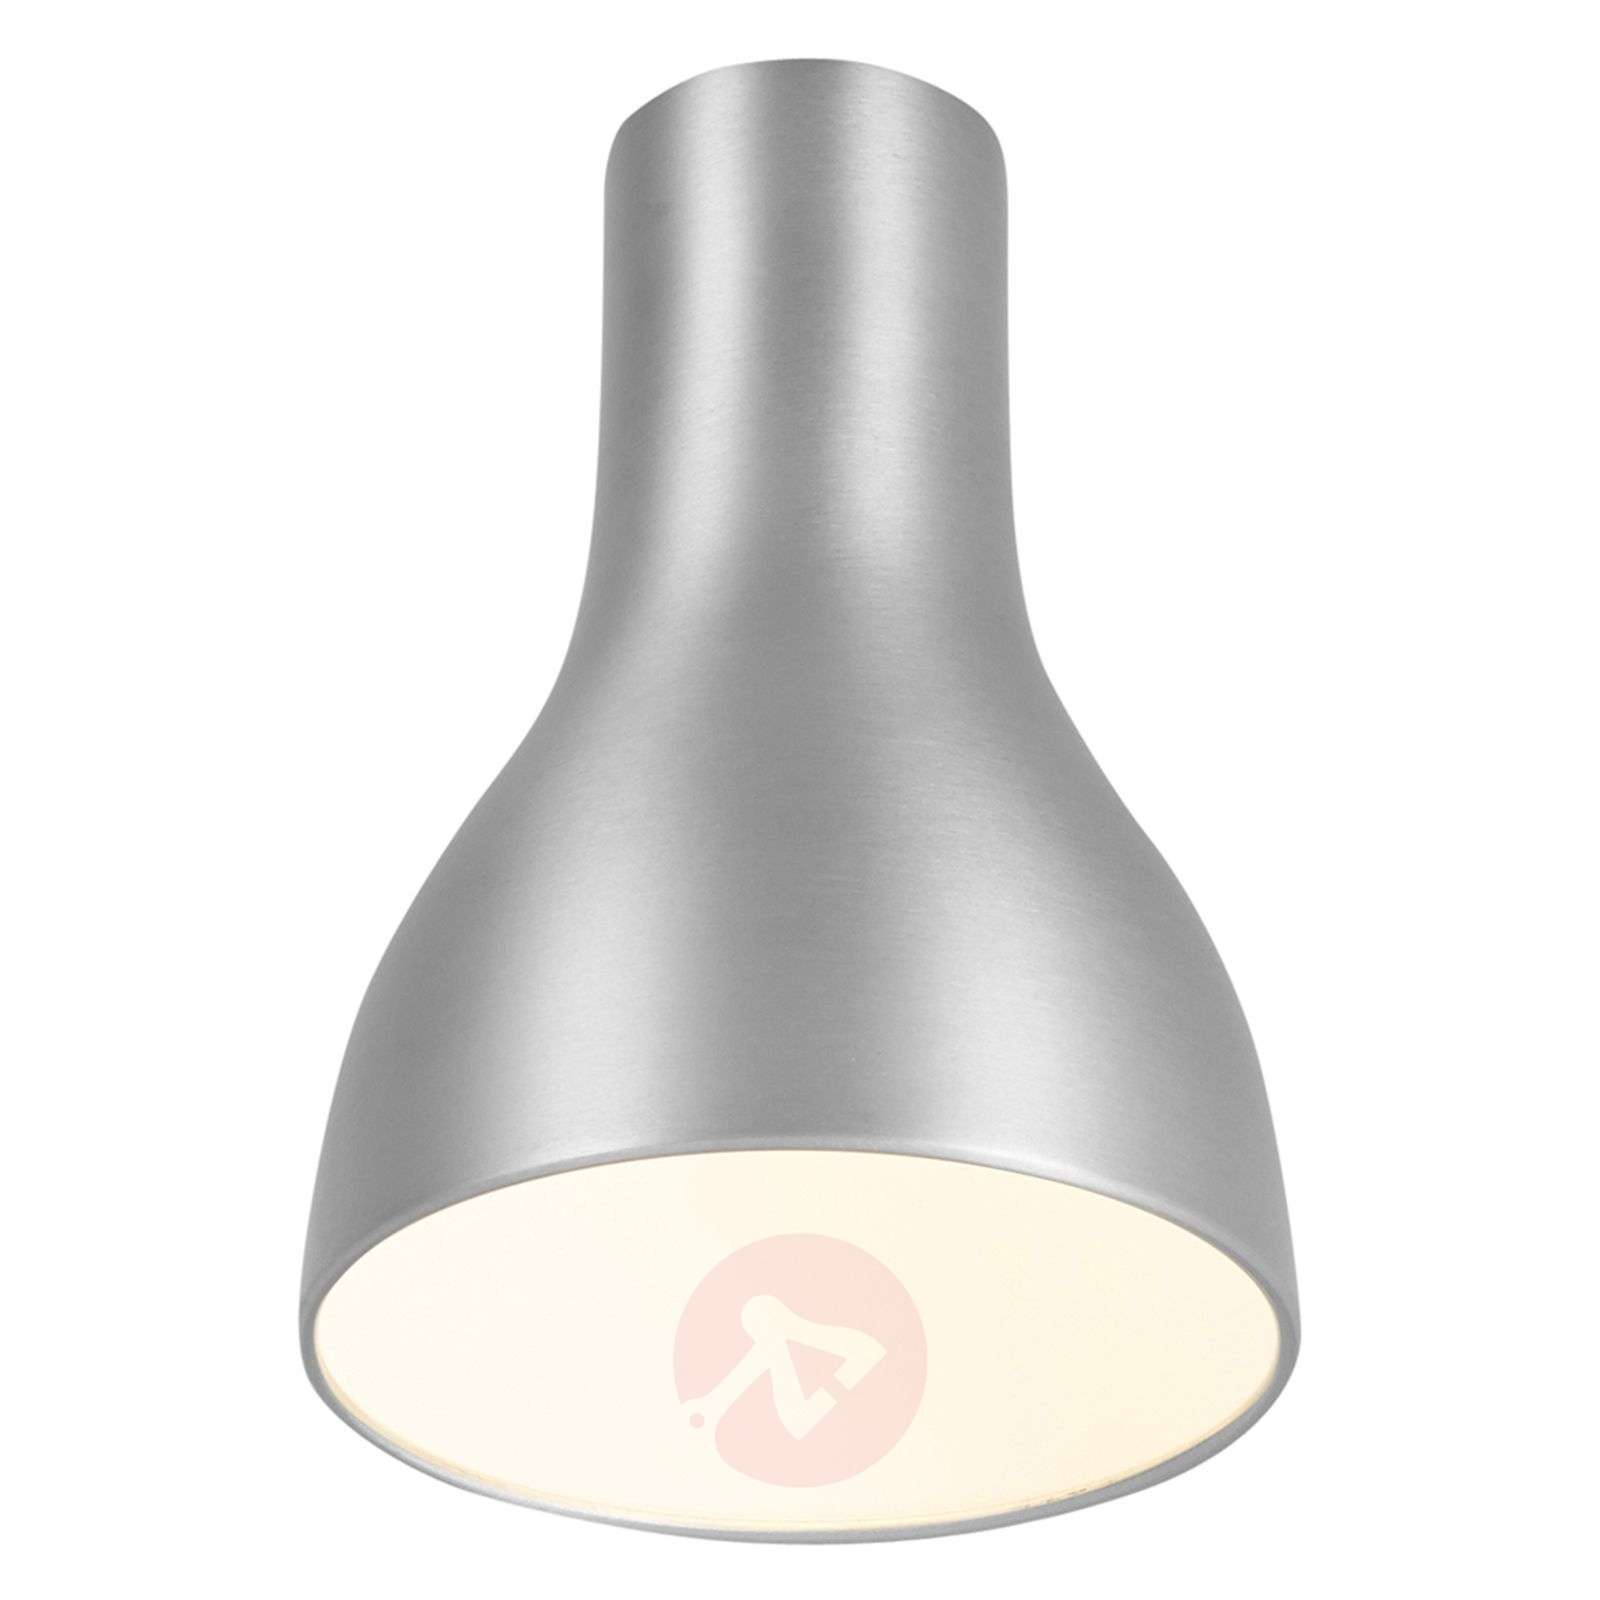 Anglepoise Type 75 wall light-1073098X-01